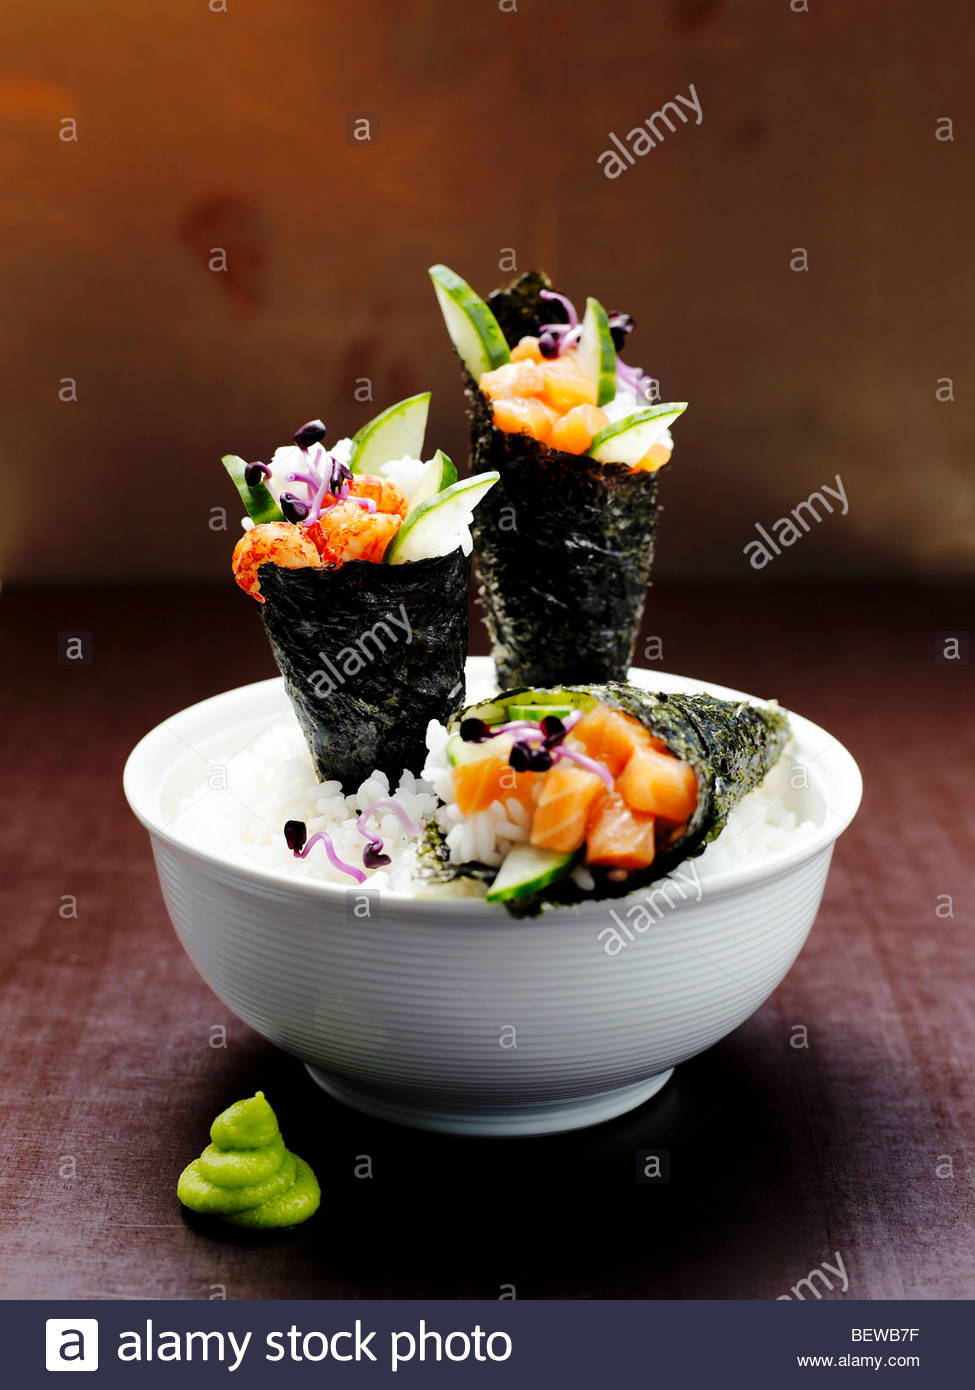 Three Temaki Sushi rolls in a rice bowl, close-up - Stock Image